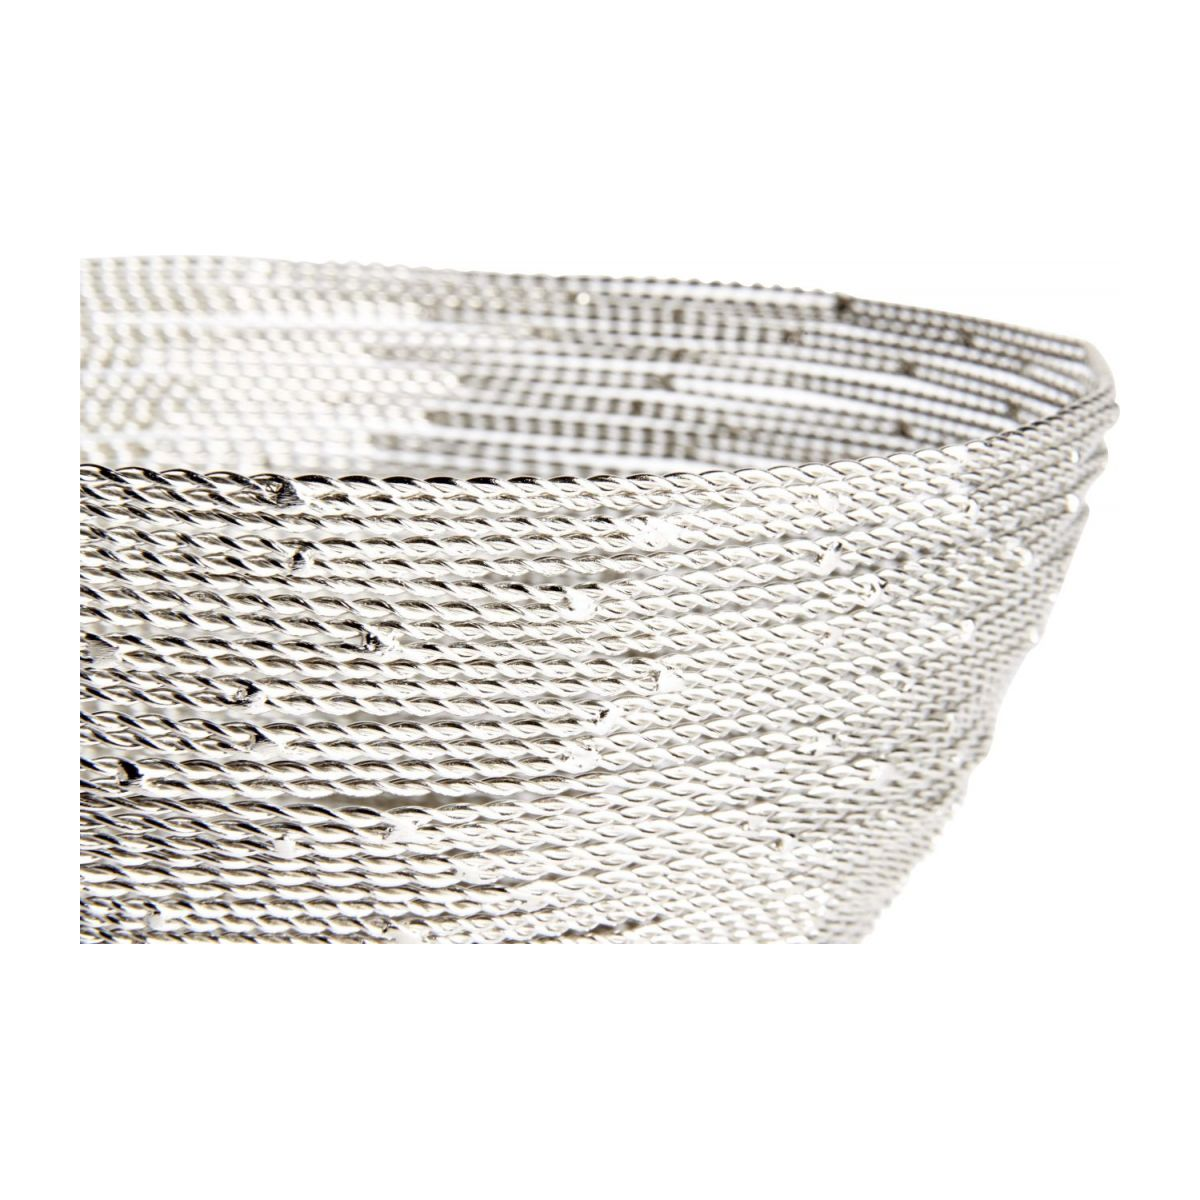 Small nickel twisted wire bowl n°3